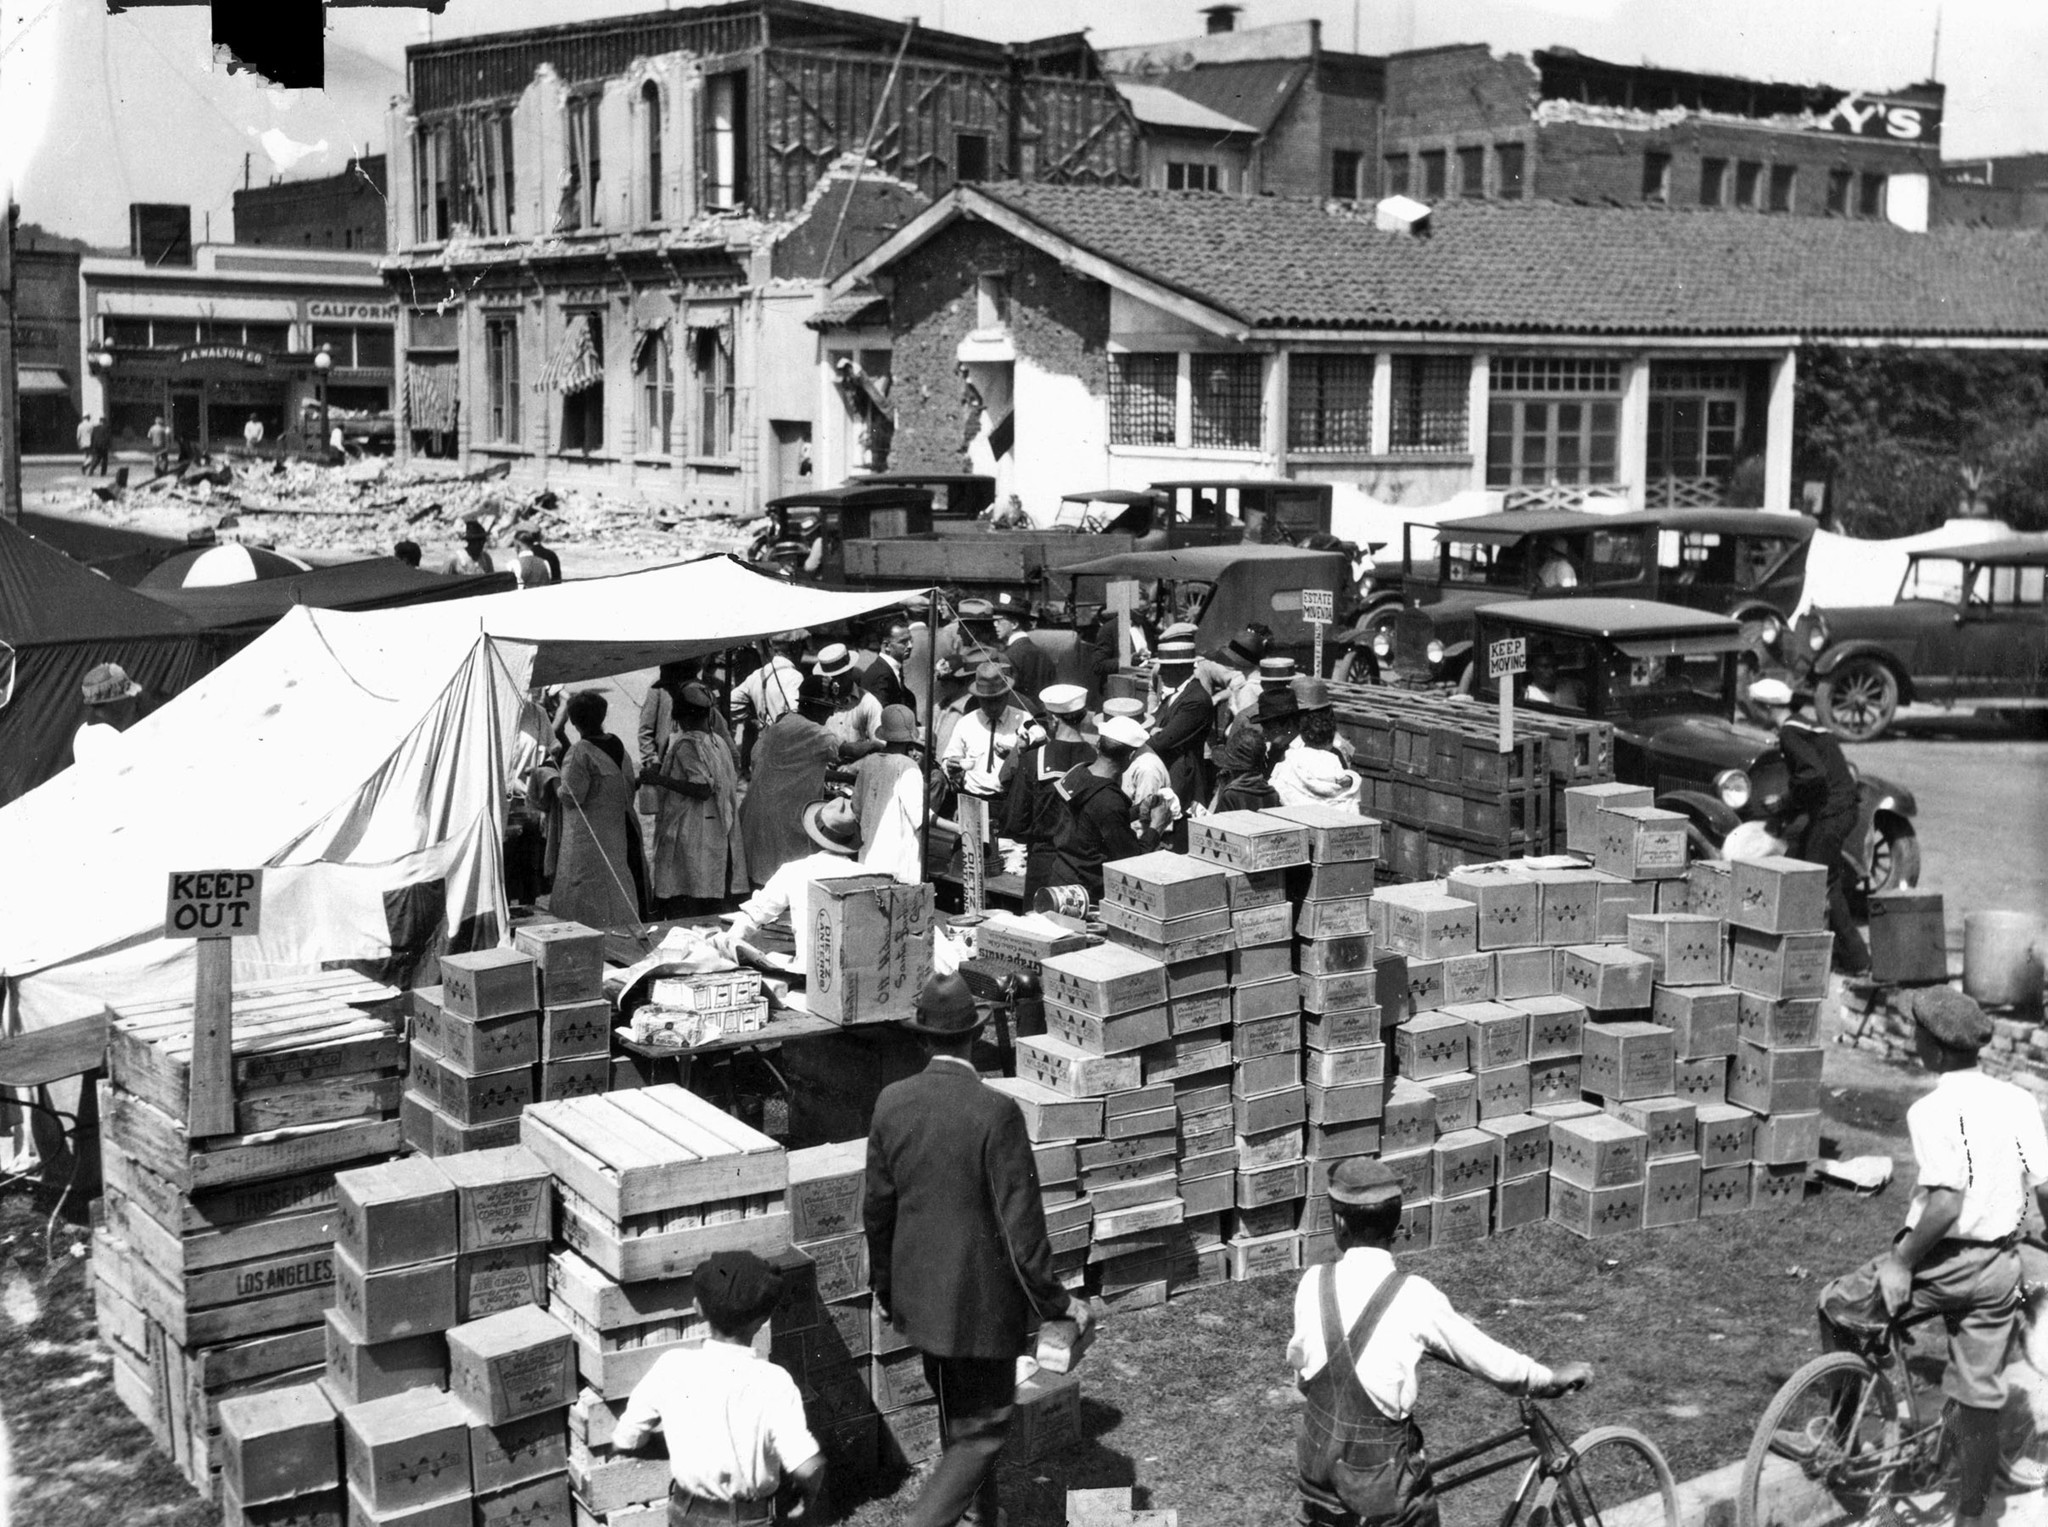 July 1, 1925: Red Cross relief workers set up outdoors in Santa Barbara following earthquake. This p